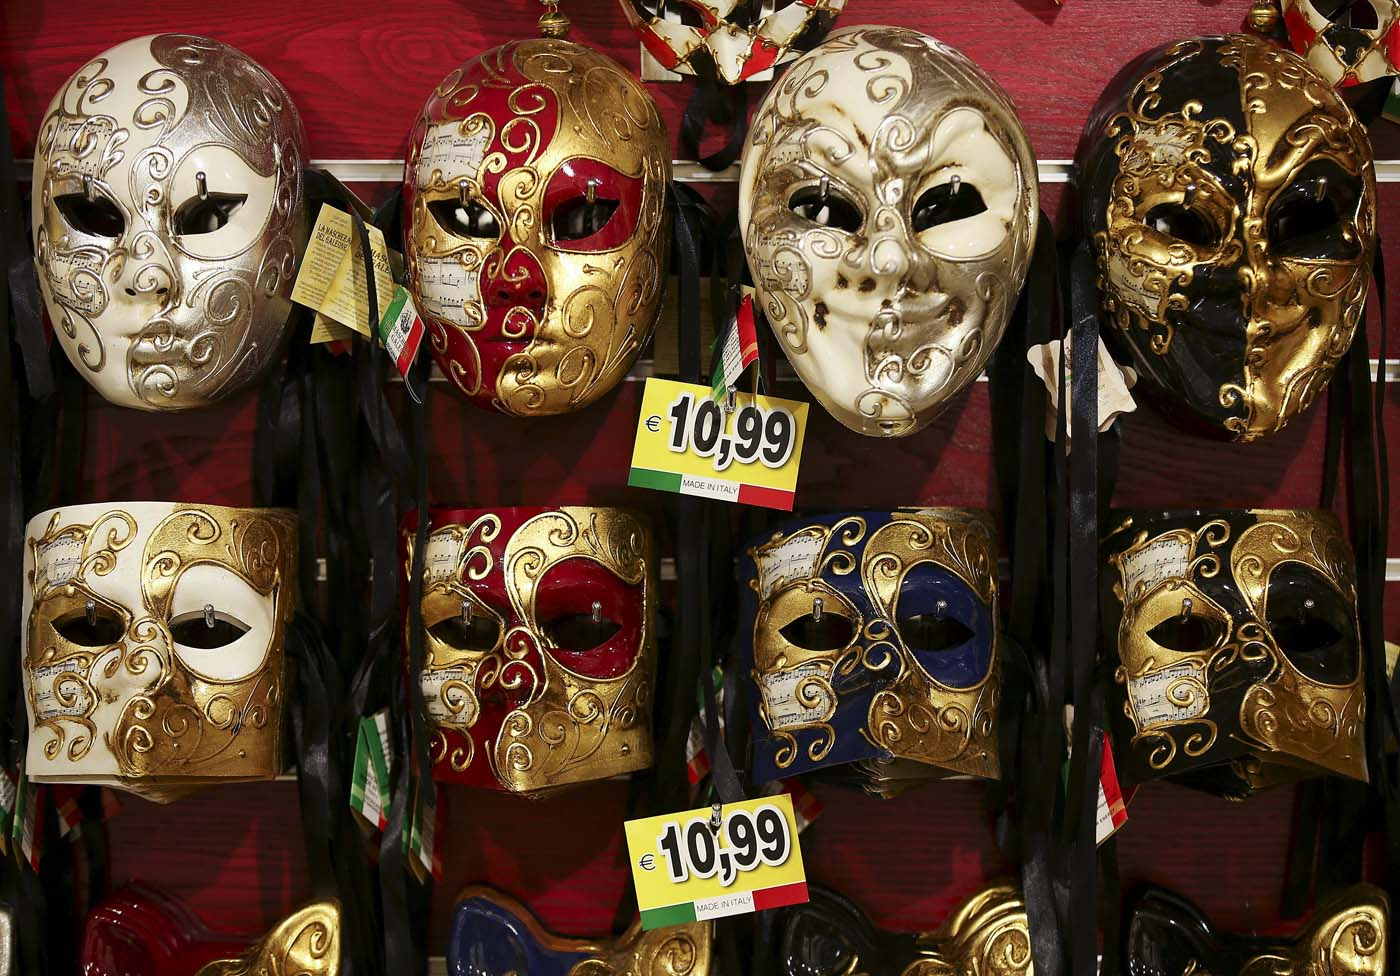 Carnival masks hang on the wall of the shop near St. Mark's Square during the Venice Carnival, January 31, 2016. REUTERS/Alessandro Bianchi EDITORIAL USE ONLY. NO RESALES. NO ARCHIVE